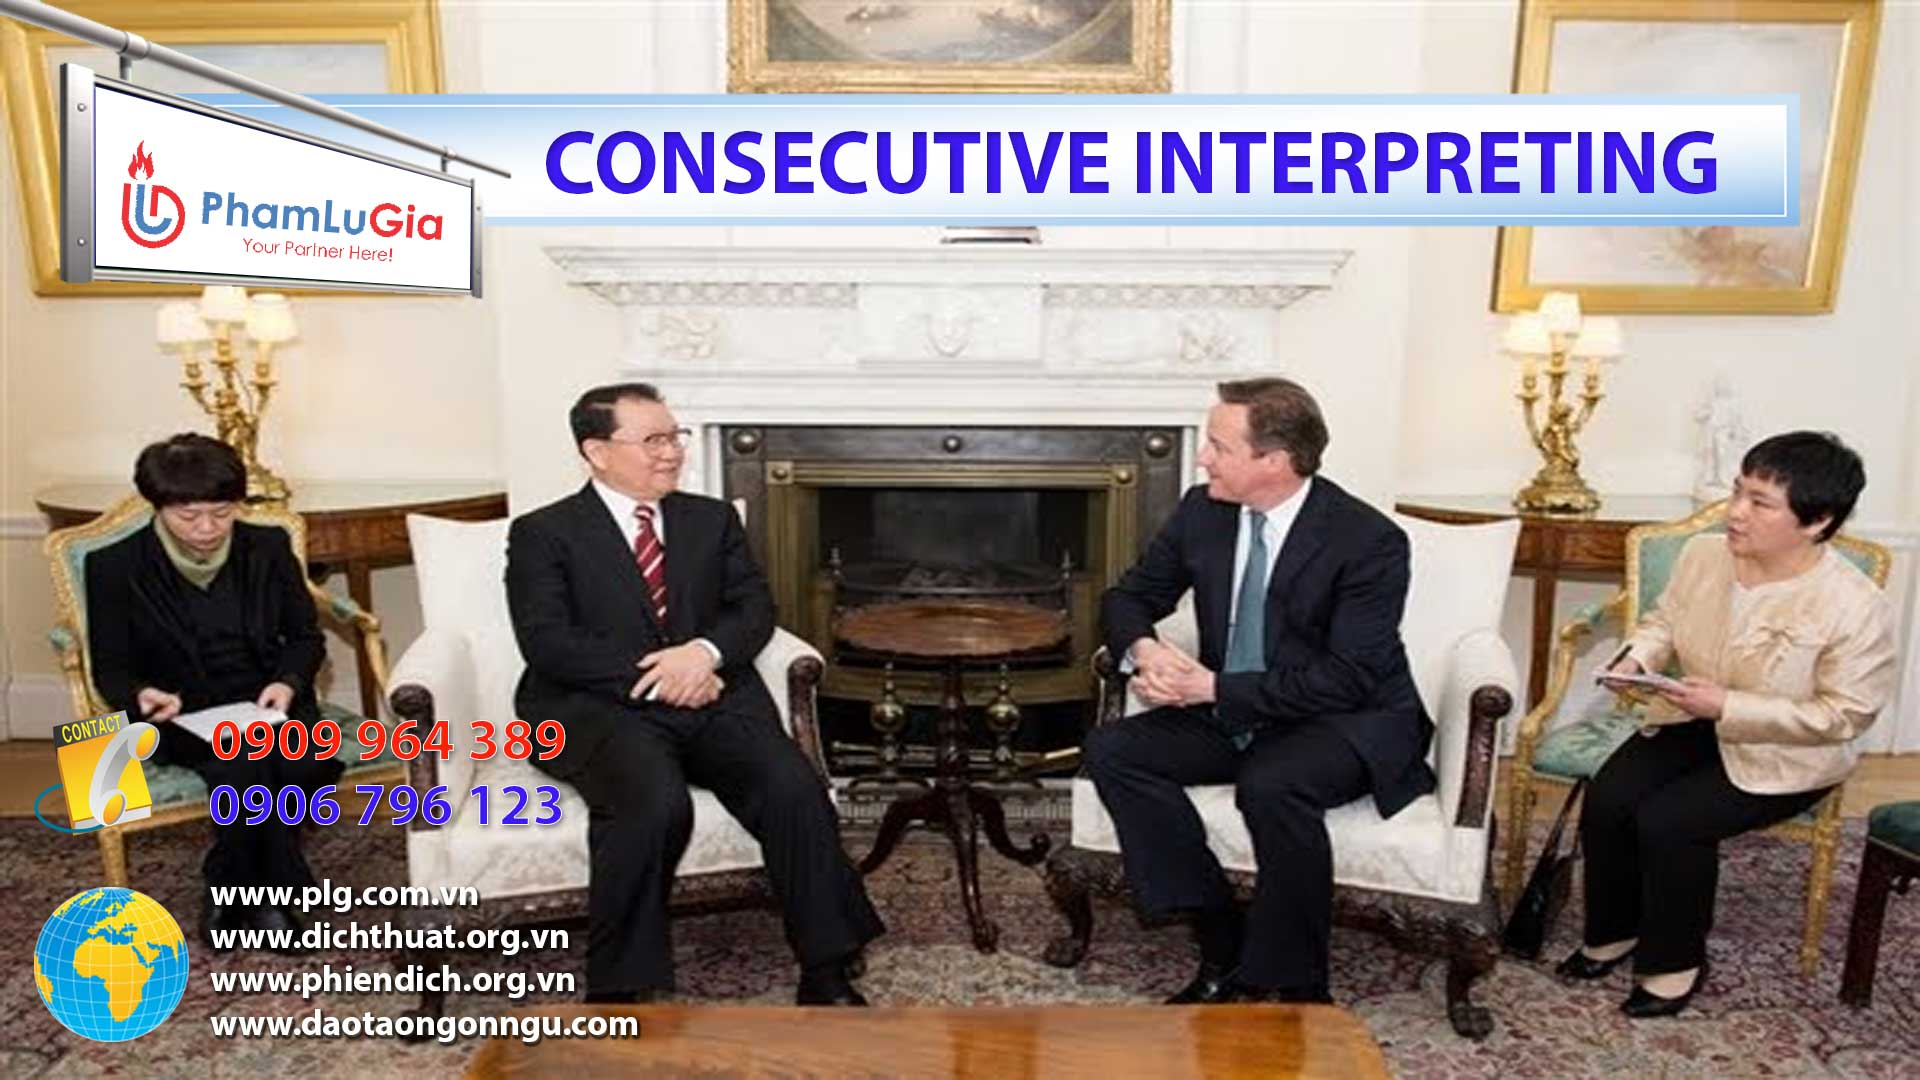 Consecutive interpreting